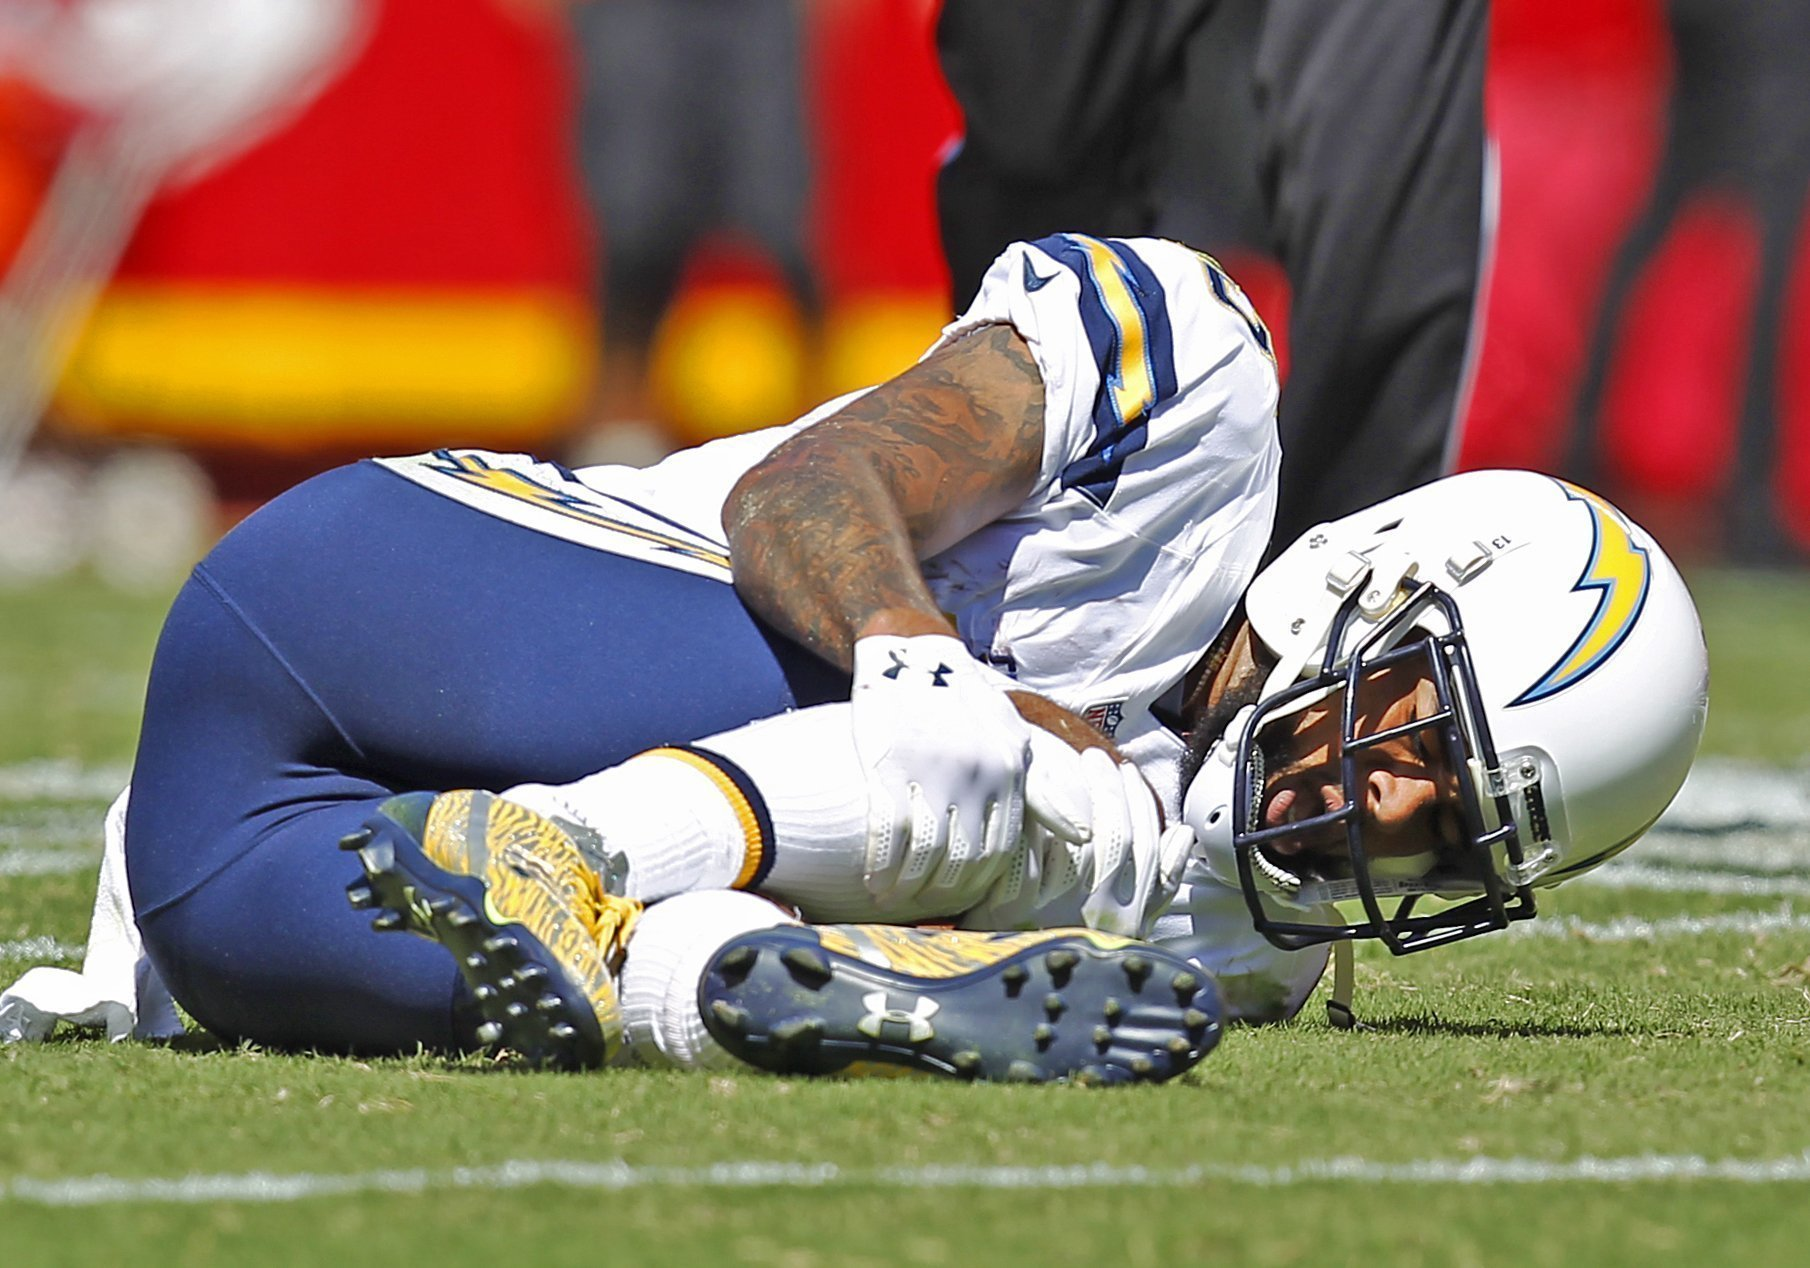 Early Diagnosis For Keenan Allen A Torn Acl The San